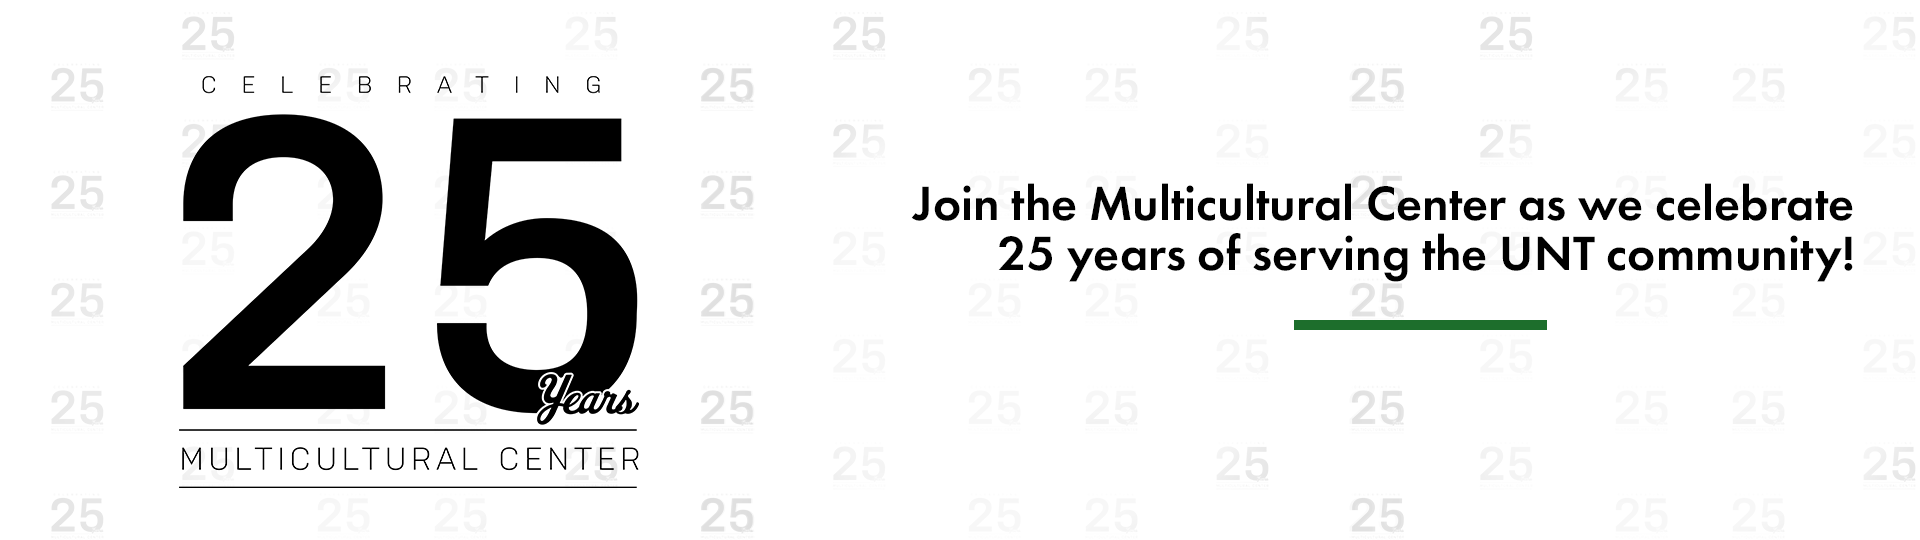 MC Celebrating 25 Years